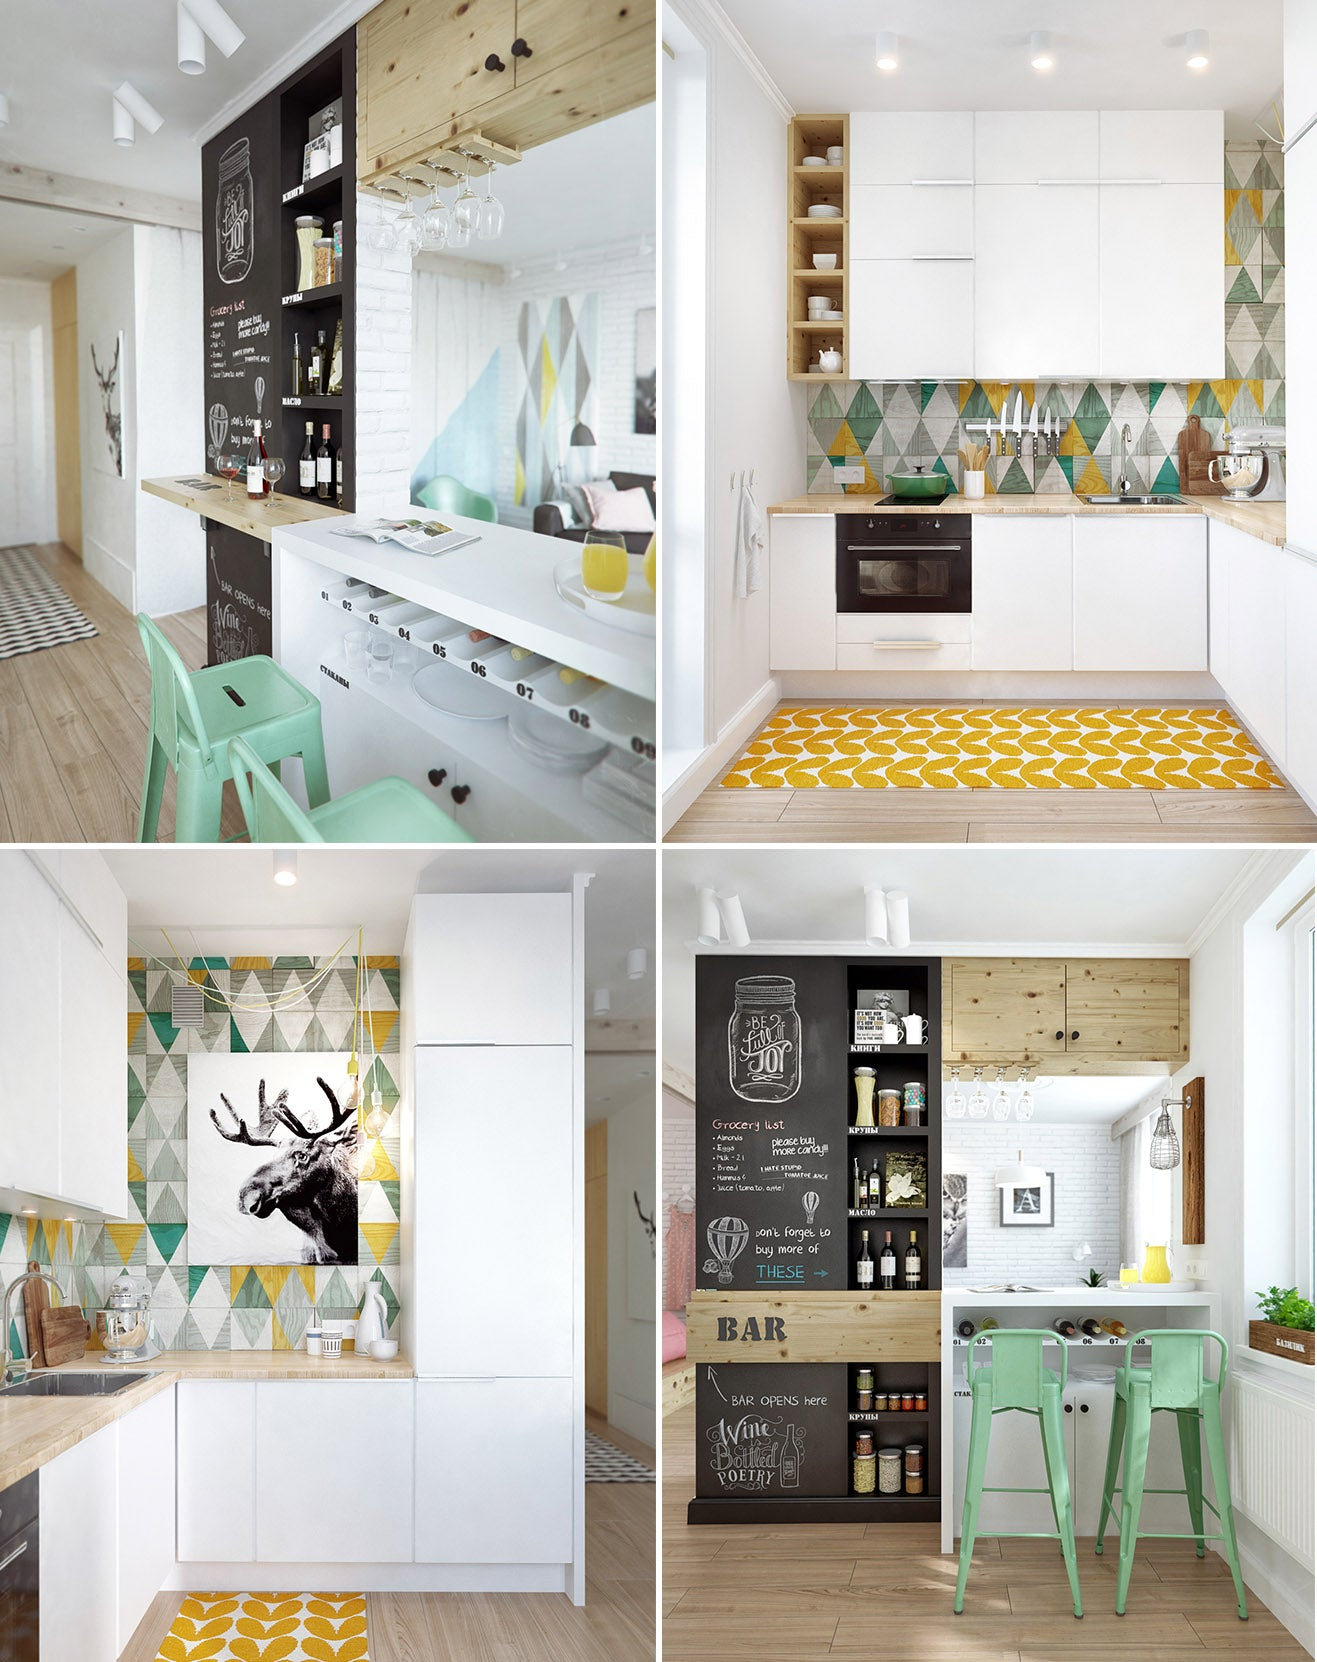 Pastel Kitchen Interior Design from INT2 Architecture